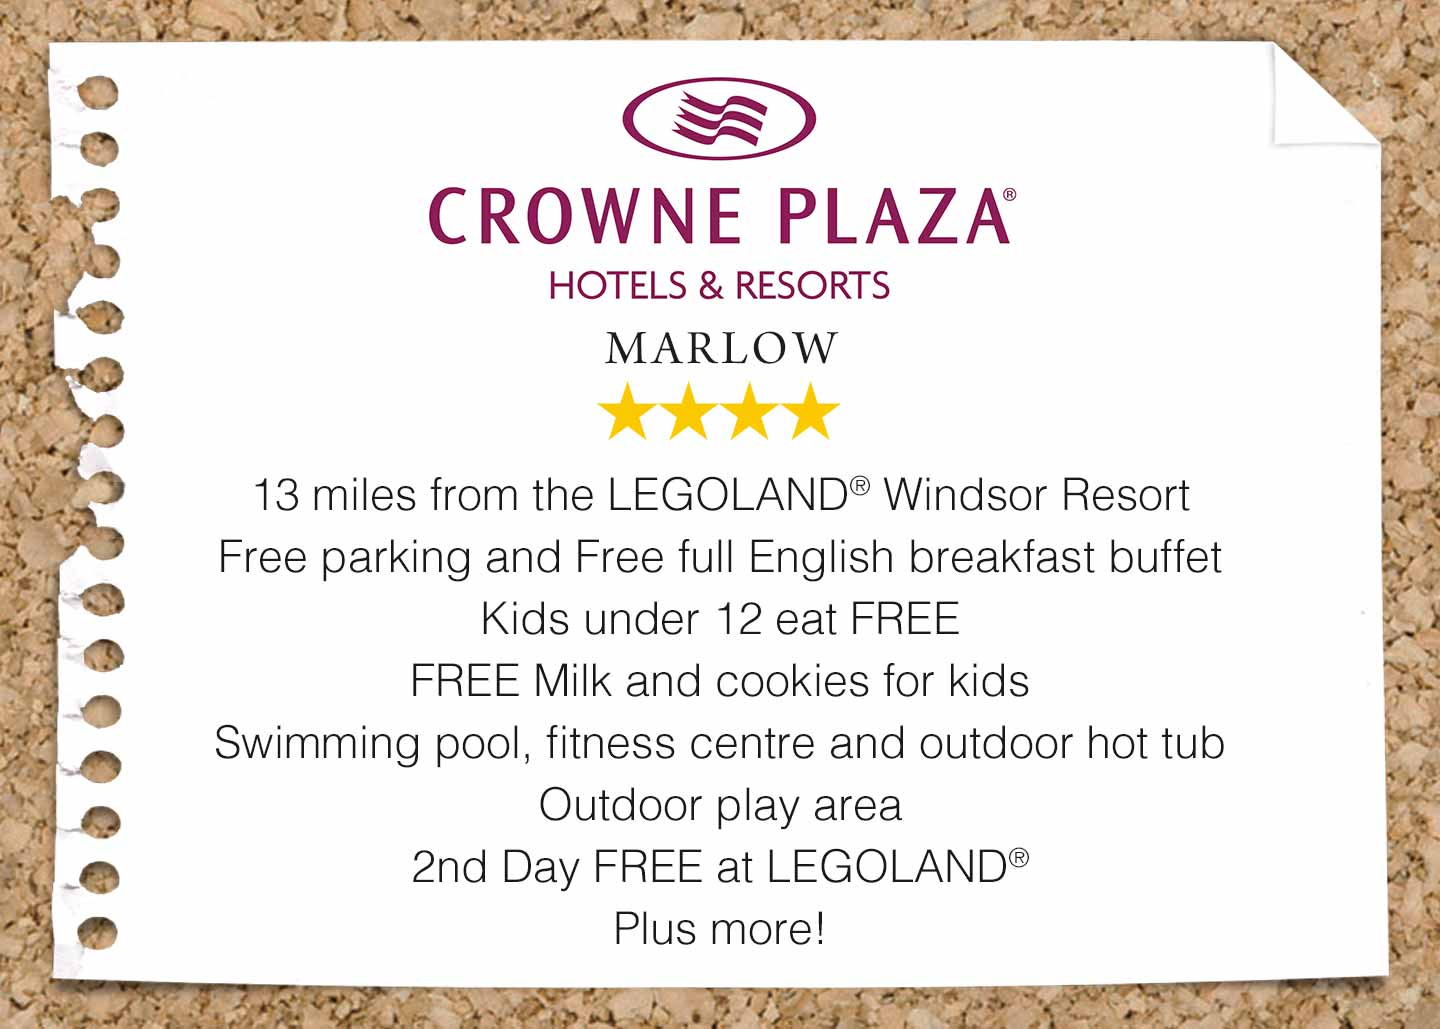 Crowne Plaza Marlow near LEGOLAND Windsor Resort